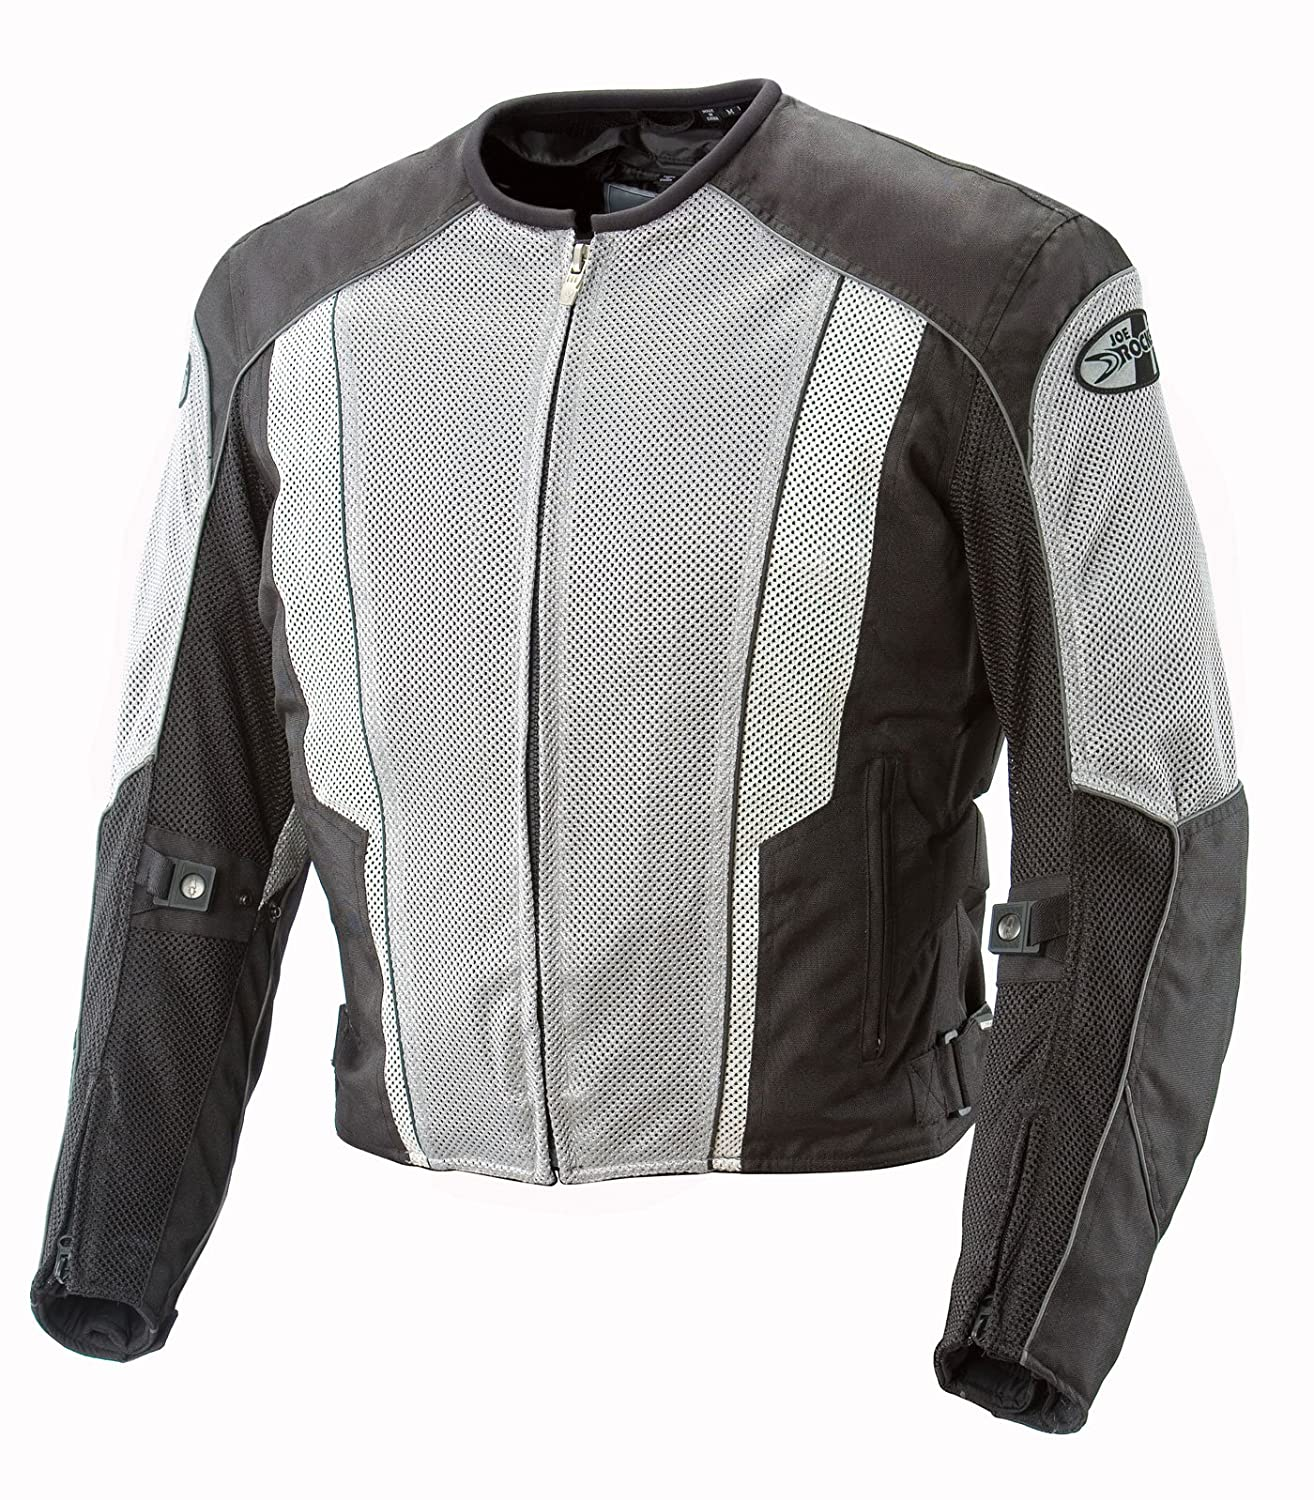 Joe Rocket 851-4016 Phoenix 5.0 Men's Mesh Motorcycle Riding Jacket (Black/Black, XX-Large Tall)